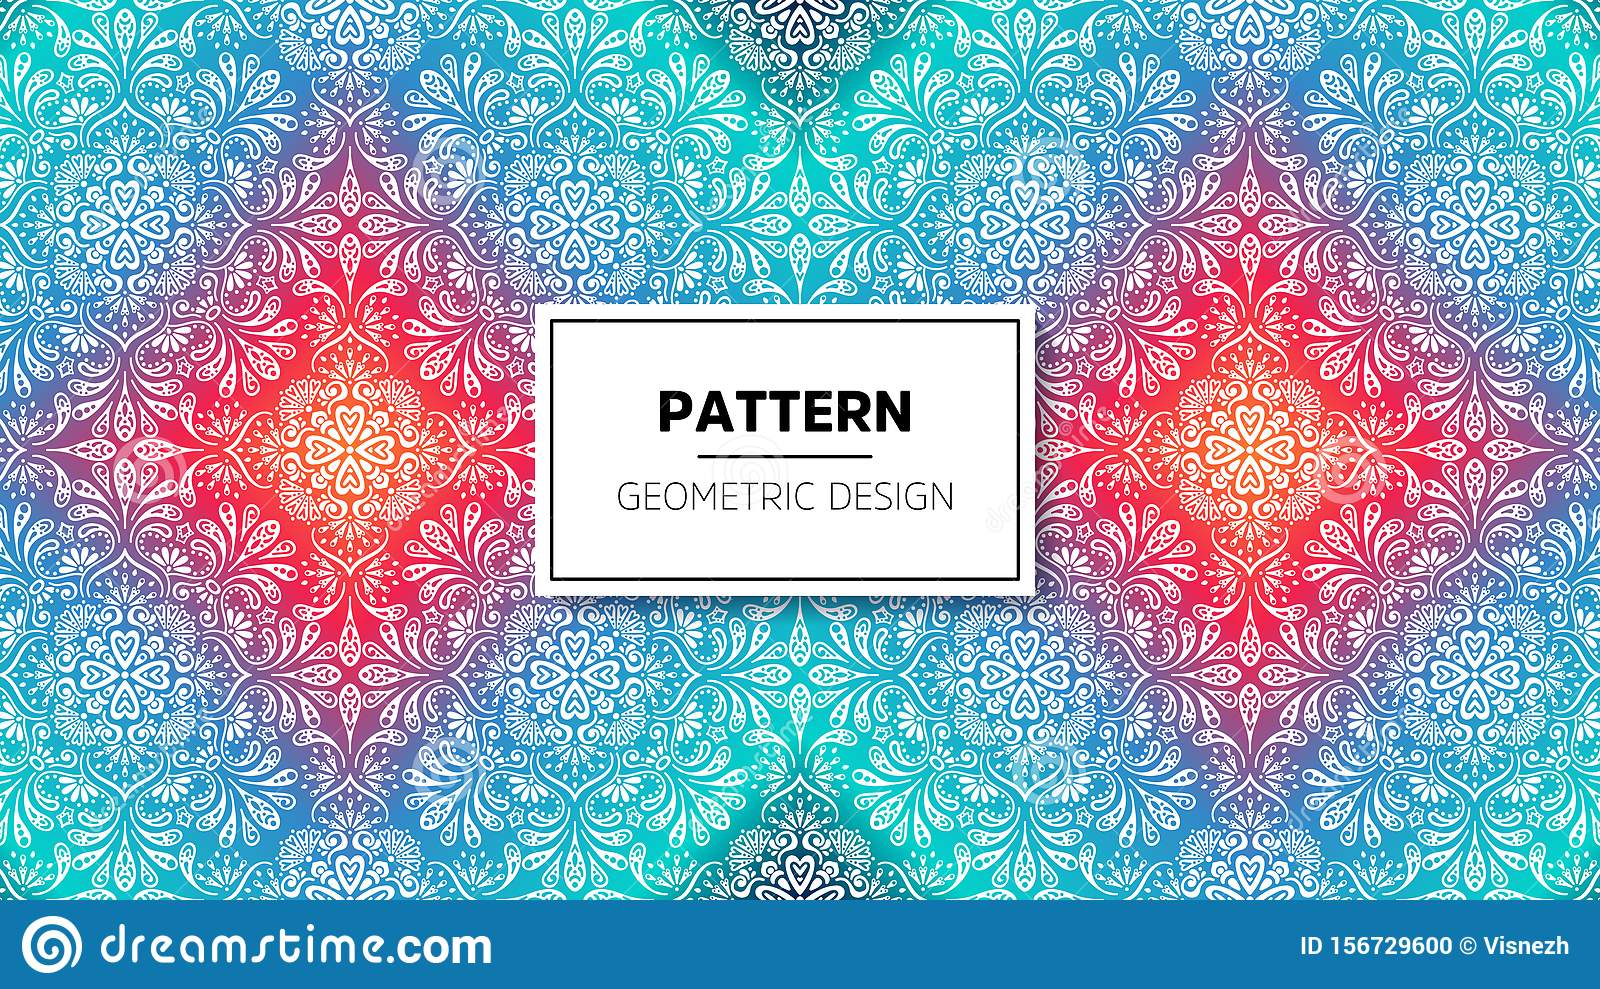 Wallpaper With Mandala Pattern Vector Background For Yoga Meditation Poster Stock Vector Illustration Of Ornament Coloring 156729600